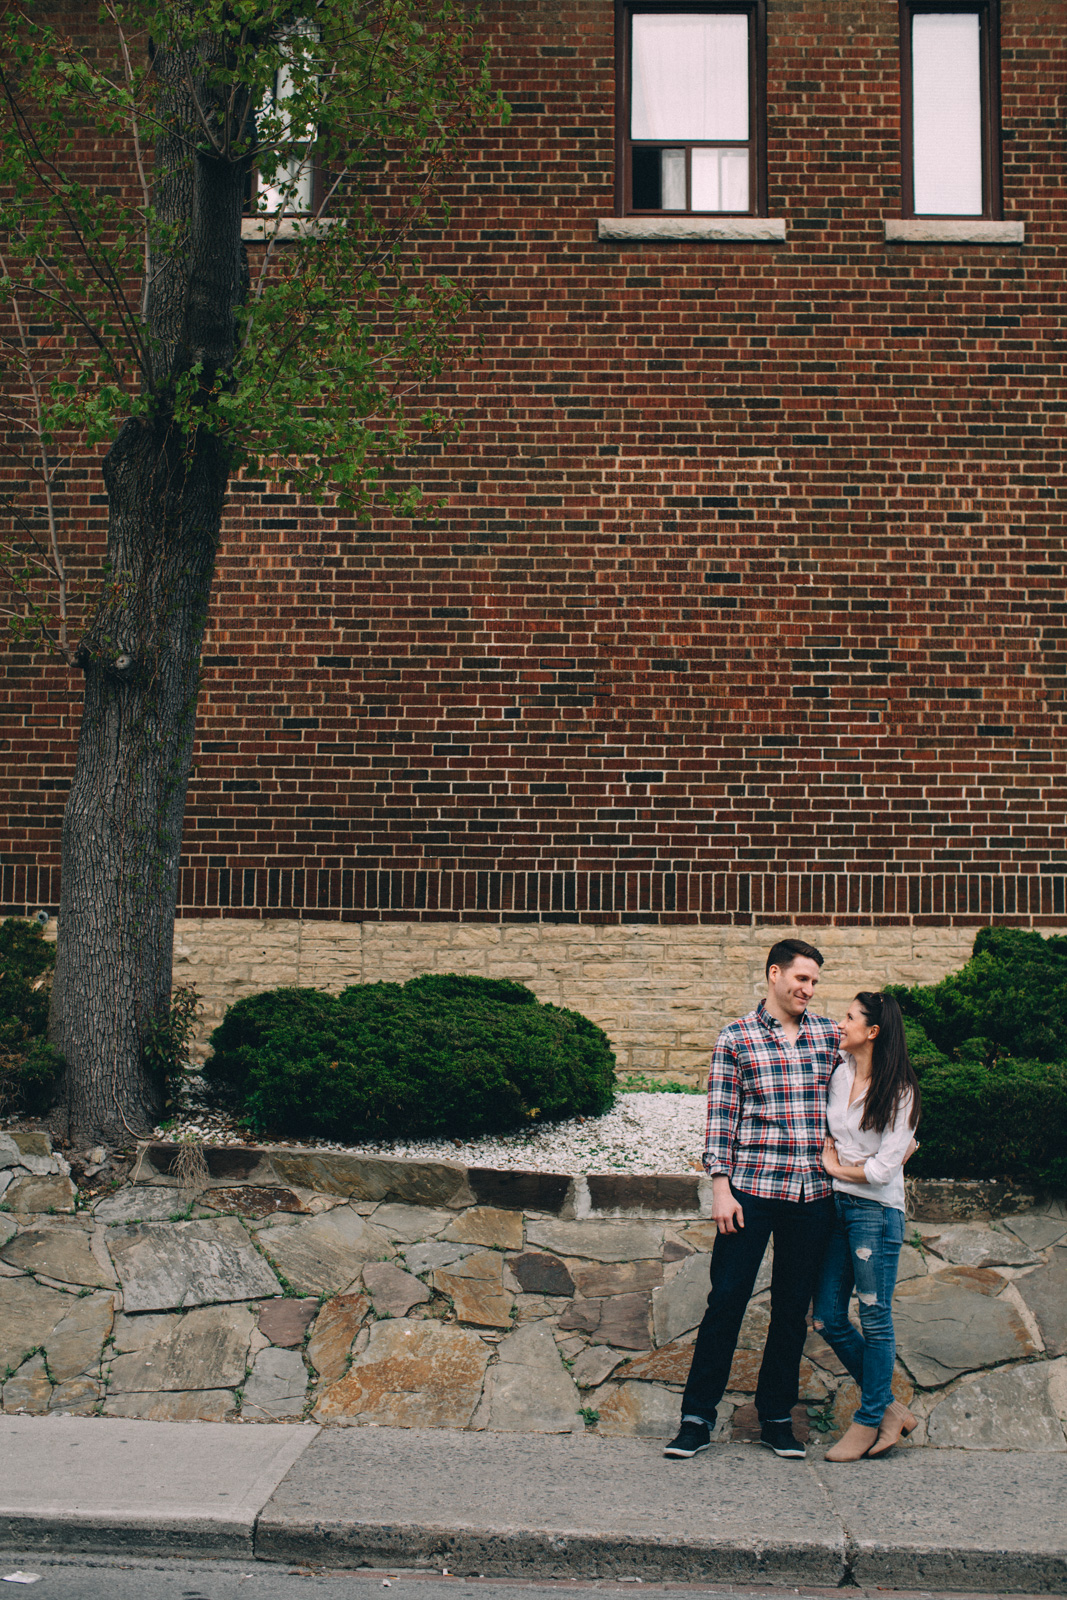 Toronto-High-Park-engagement-photography-JnM-by-visual-cravings-_04